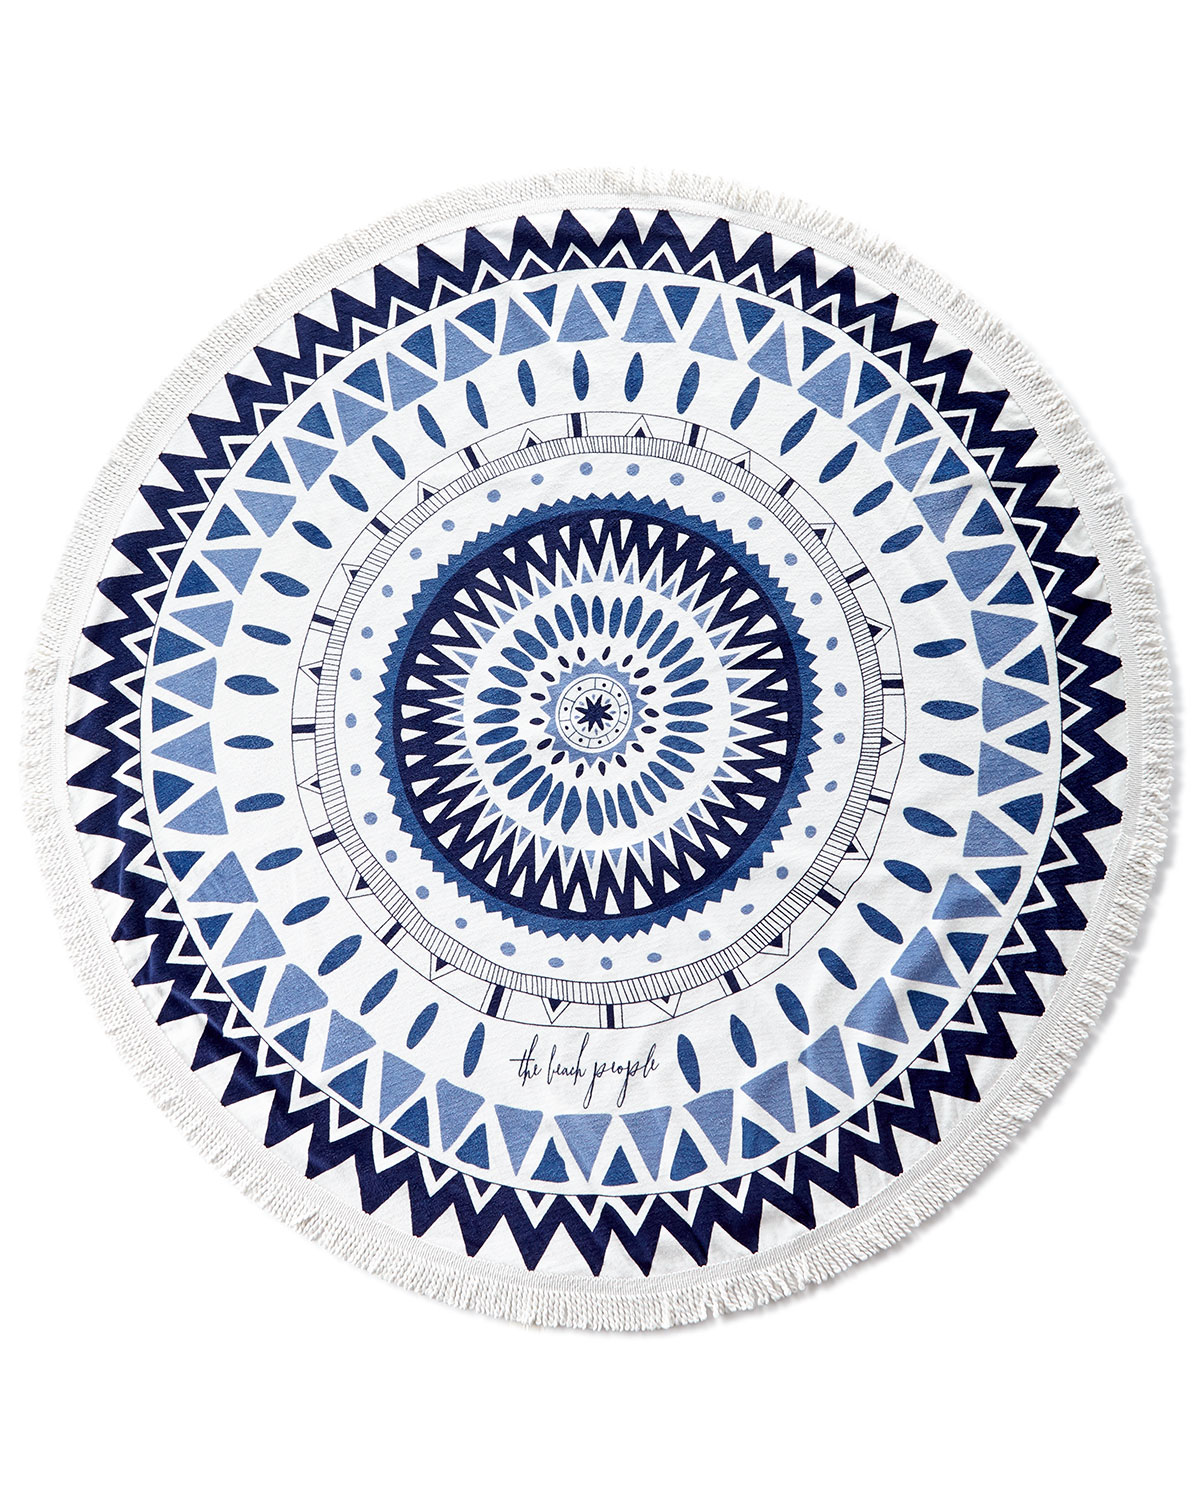 Majorelle Round Beach Towel, White/Blue - The Beach People